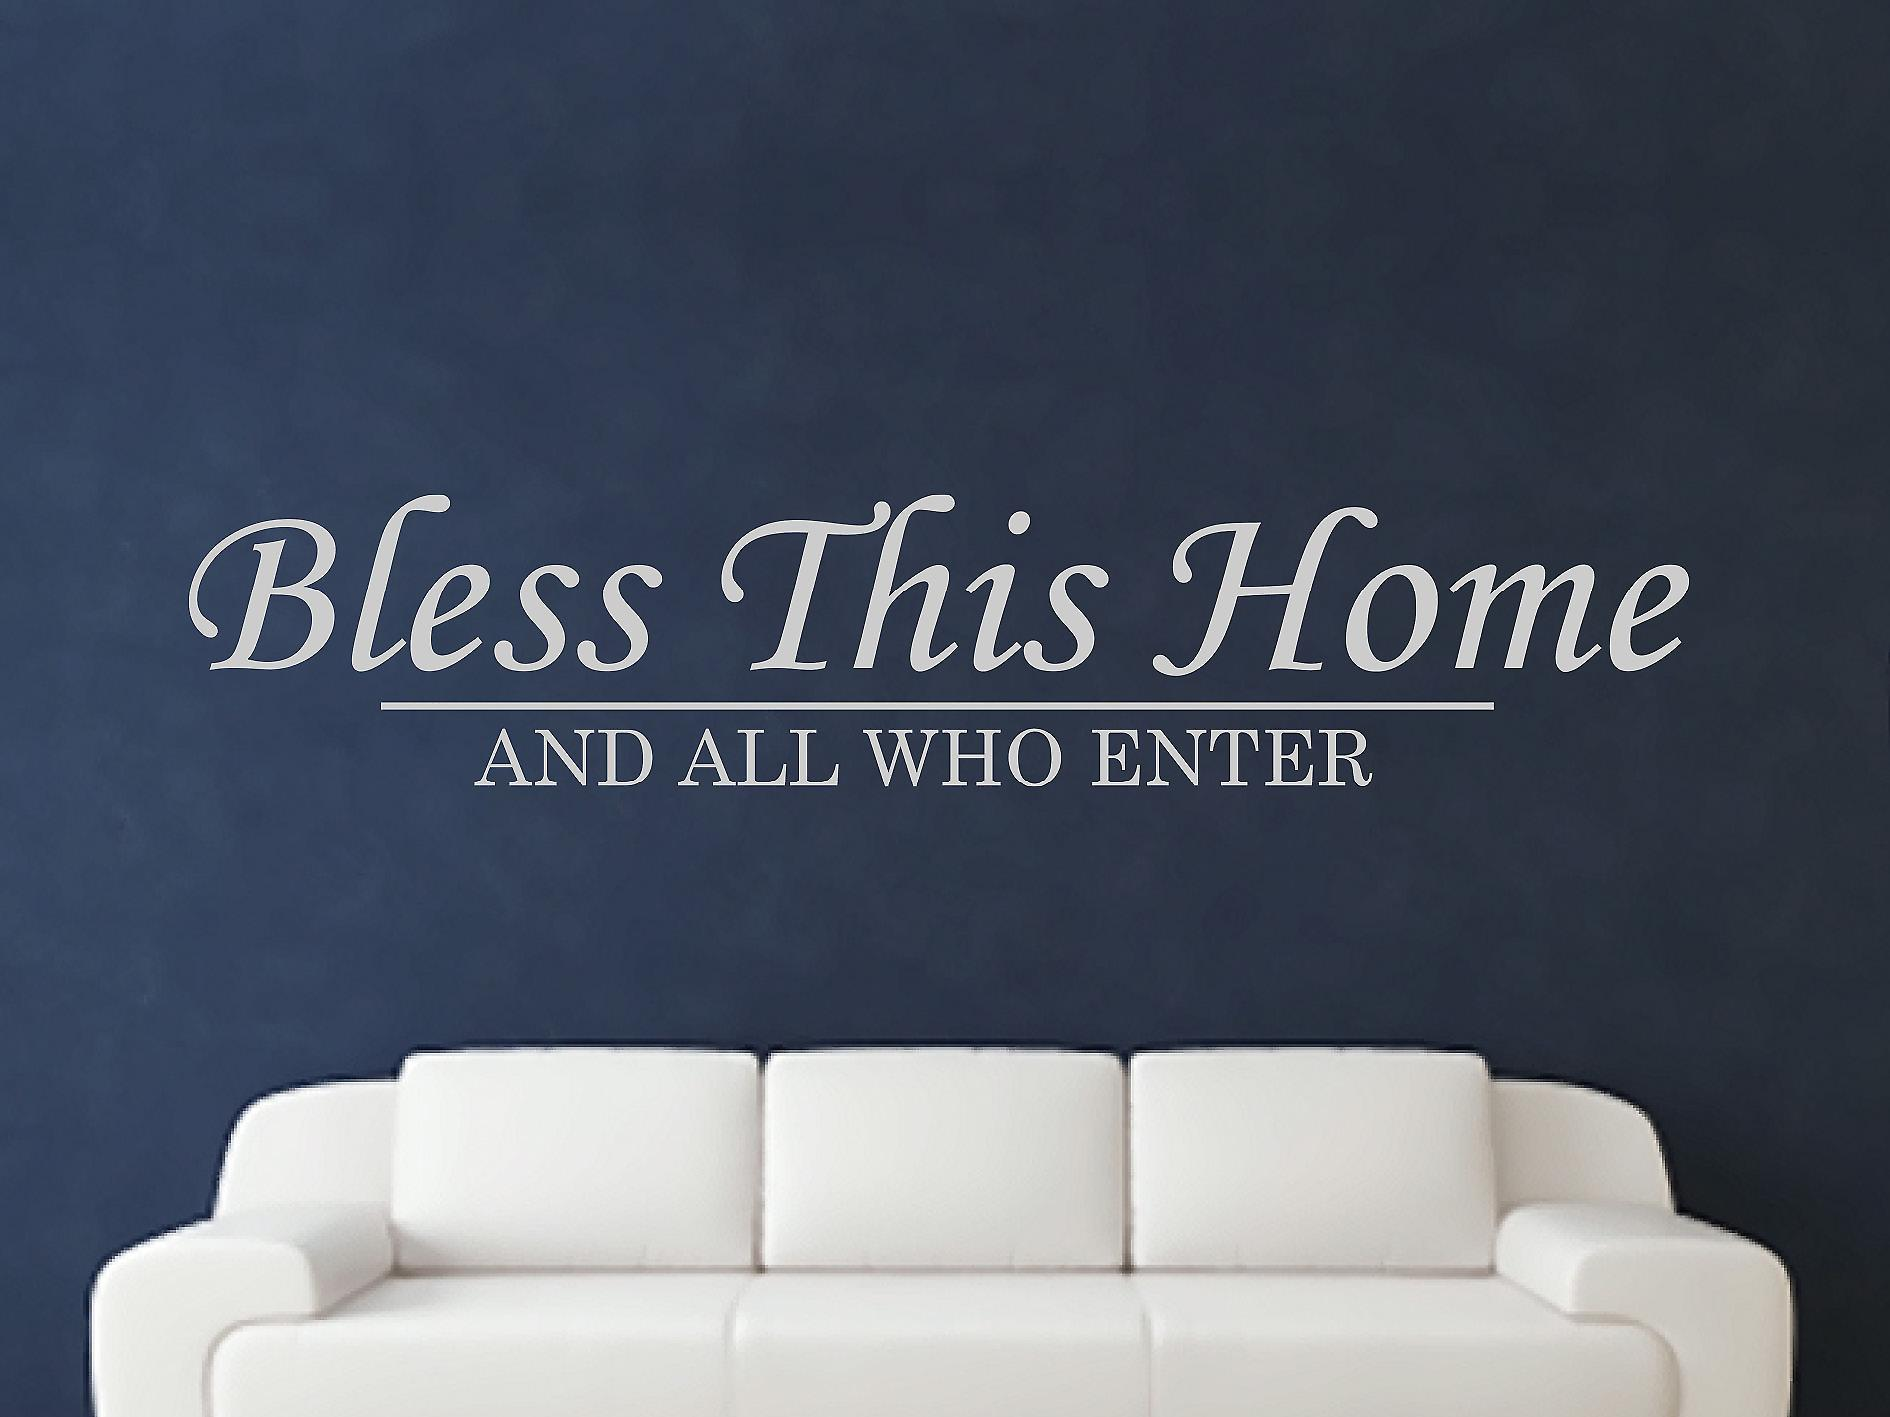 Bless This Home Wall Art Sticker - Grey